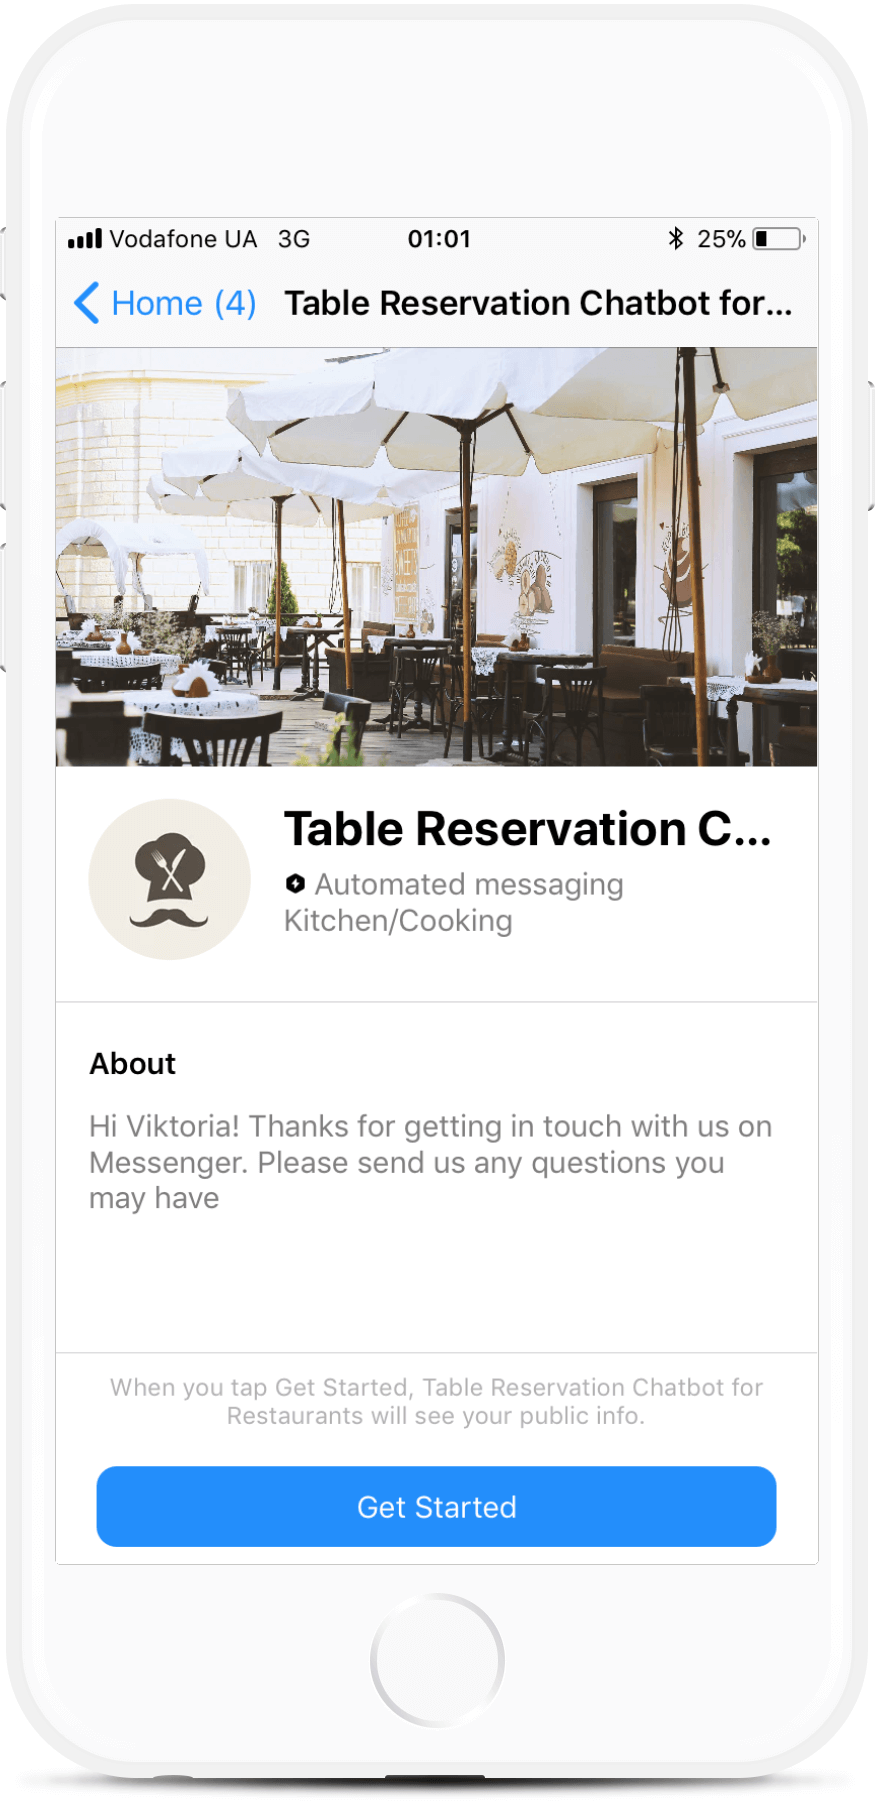 Restaurant Table Reservation Bot Template for Messenger